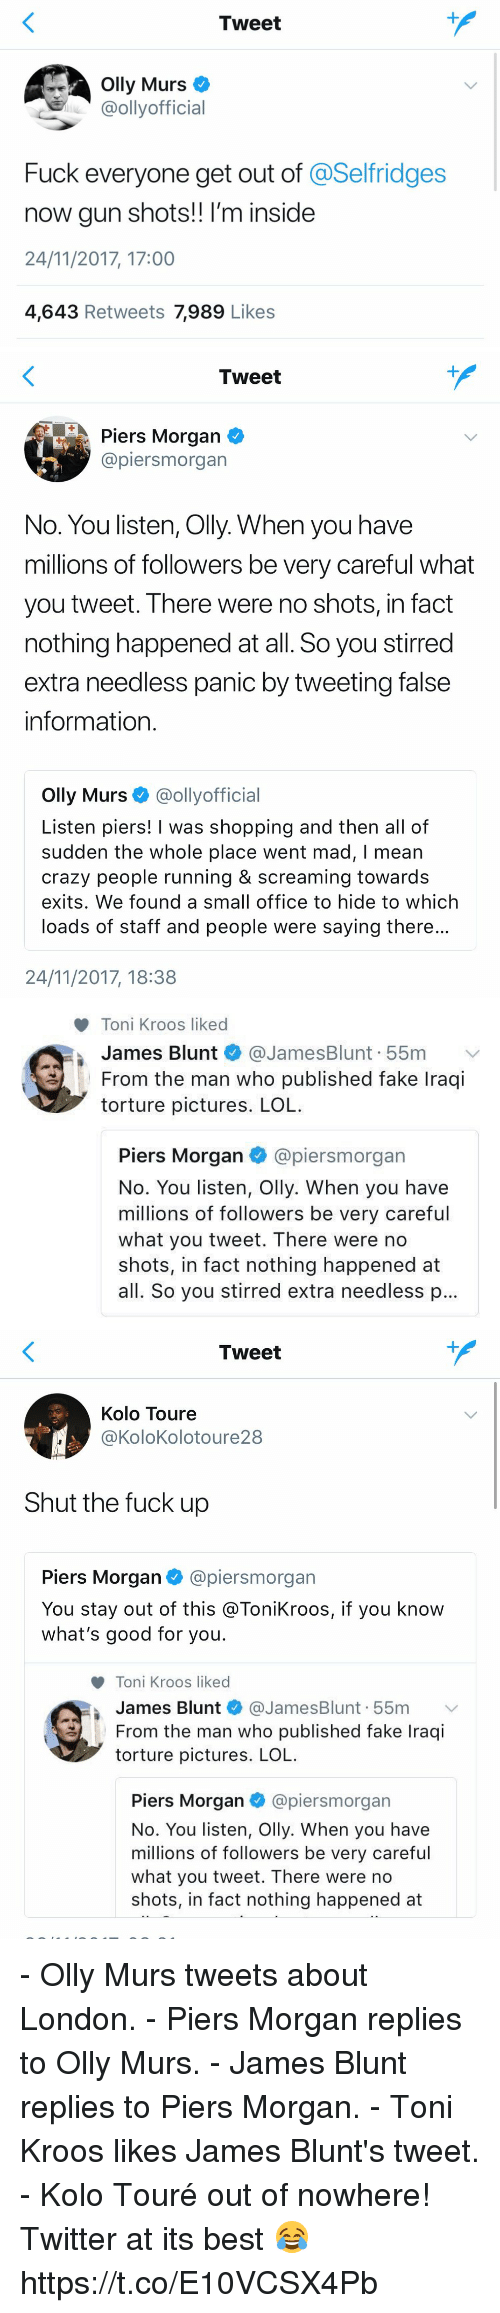 crazy people: Tweet  Olly Murs  @ollyofficial  Fuck everyone get out of @Selfridges  now gun shots!! I'm inside  24/11/2017, 17:00  4,643 Retweets 7,989 Likes   Tweet  Piers Morgan  @piersmorgan  No. You listen, Olly. When you have  millions of followers be very careful what  you tweet. There were no shots, in fact  nothing happened at all. So you stirred  extra needless panic by tweeting false  information  Olly Murs @ollyofficial  Listen piers! I was shopping and then all of  sudden the whole place went mad, I mean  crazy people running & screaming towards  exits. We found a small office to hide to which  loads of staff and people were saying there  24/11/2017, 18:38   Toni Kroos liked  James Blunt * @JamesBlunt. 55m  From the man who published fake Iraqi  torture pictures. LOL  ﹀  I  Piers Morgan @piersmorgan  No. You listen, Olly. When you have  millions of followers be very careful  what you tweet. There were no  shots, in fact nothing happened at  all. So you stirred extra needless p   Tweet  Kolo Toure  @KoloKolotoure28  Shut the fuck up  Piers Morgan@piersmorgan  You stay out of this @ToniKroos, if you know  what's good for you.  Toni Kroos liked  James Blunt * @JamesBlunt. 55m 、  From the man who published fake Iraqi  torture pictures. LOL  Piers Morgan@piersmorgan  No. You listen, Olly. When you have  millions of followers be very careful  what you tweet. There were no  shots, in fact nothing happened at - Olly Murs tweets about London. - Piers Morgan replies to Olly Murs. - James Blunt replies to Piers Morgan. - Toni Kroos likes James Blunt's tweet. - Kolo Touré out of nowhere!  Twitter at its best 😂 https://t.co/E10VCSX4Pb